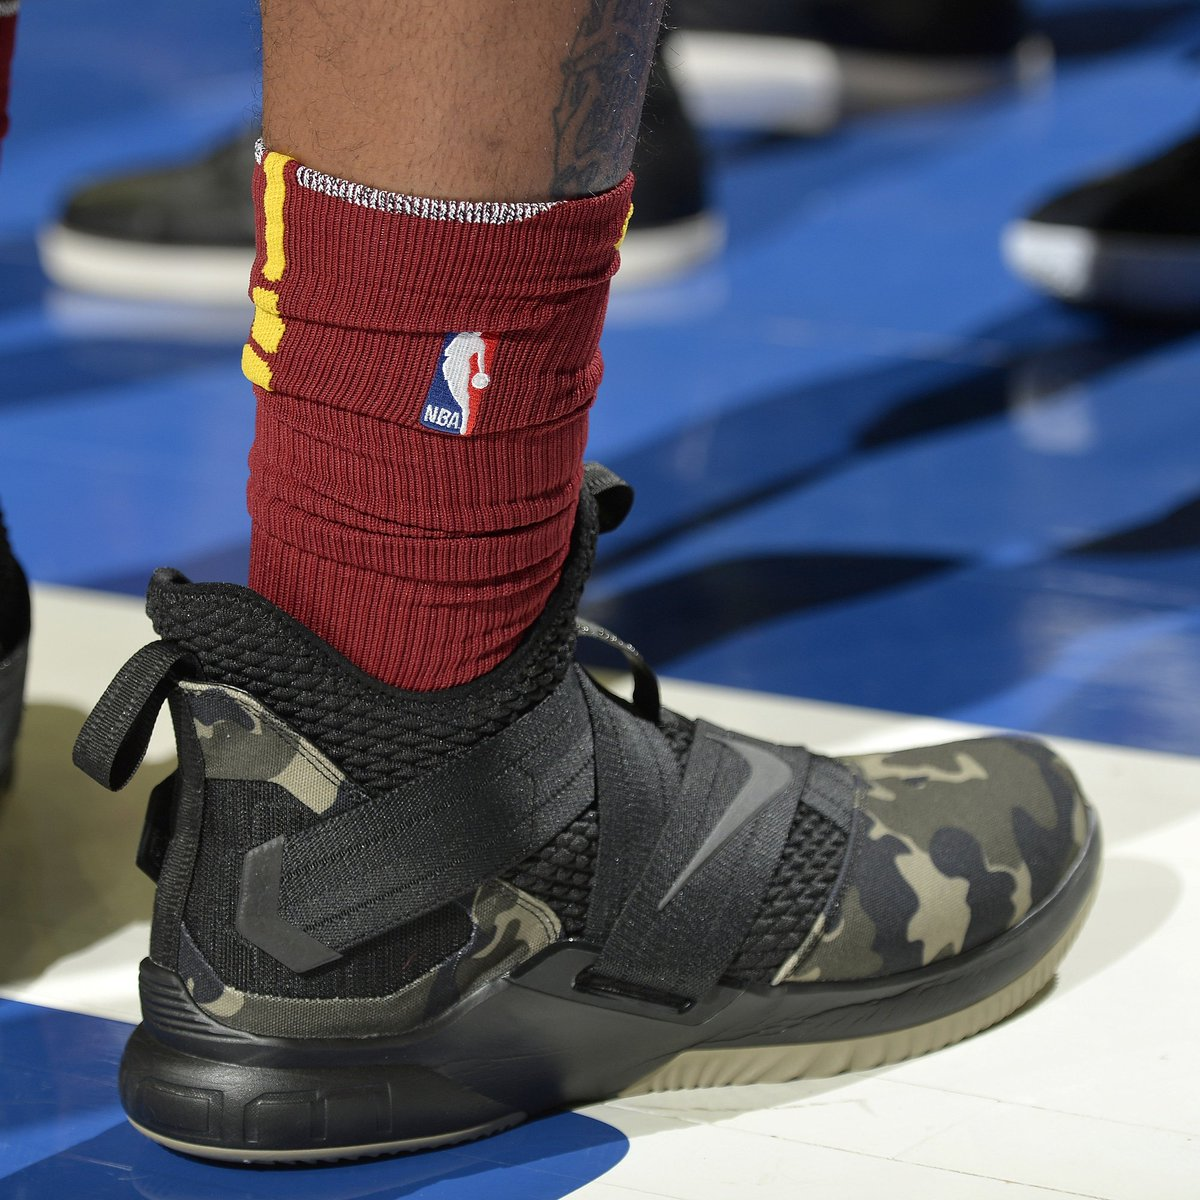 Jr smith debuts the nike lebron soldier 12. - scoopnest.com 805328a7c